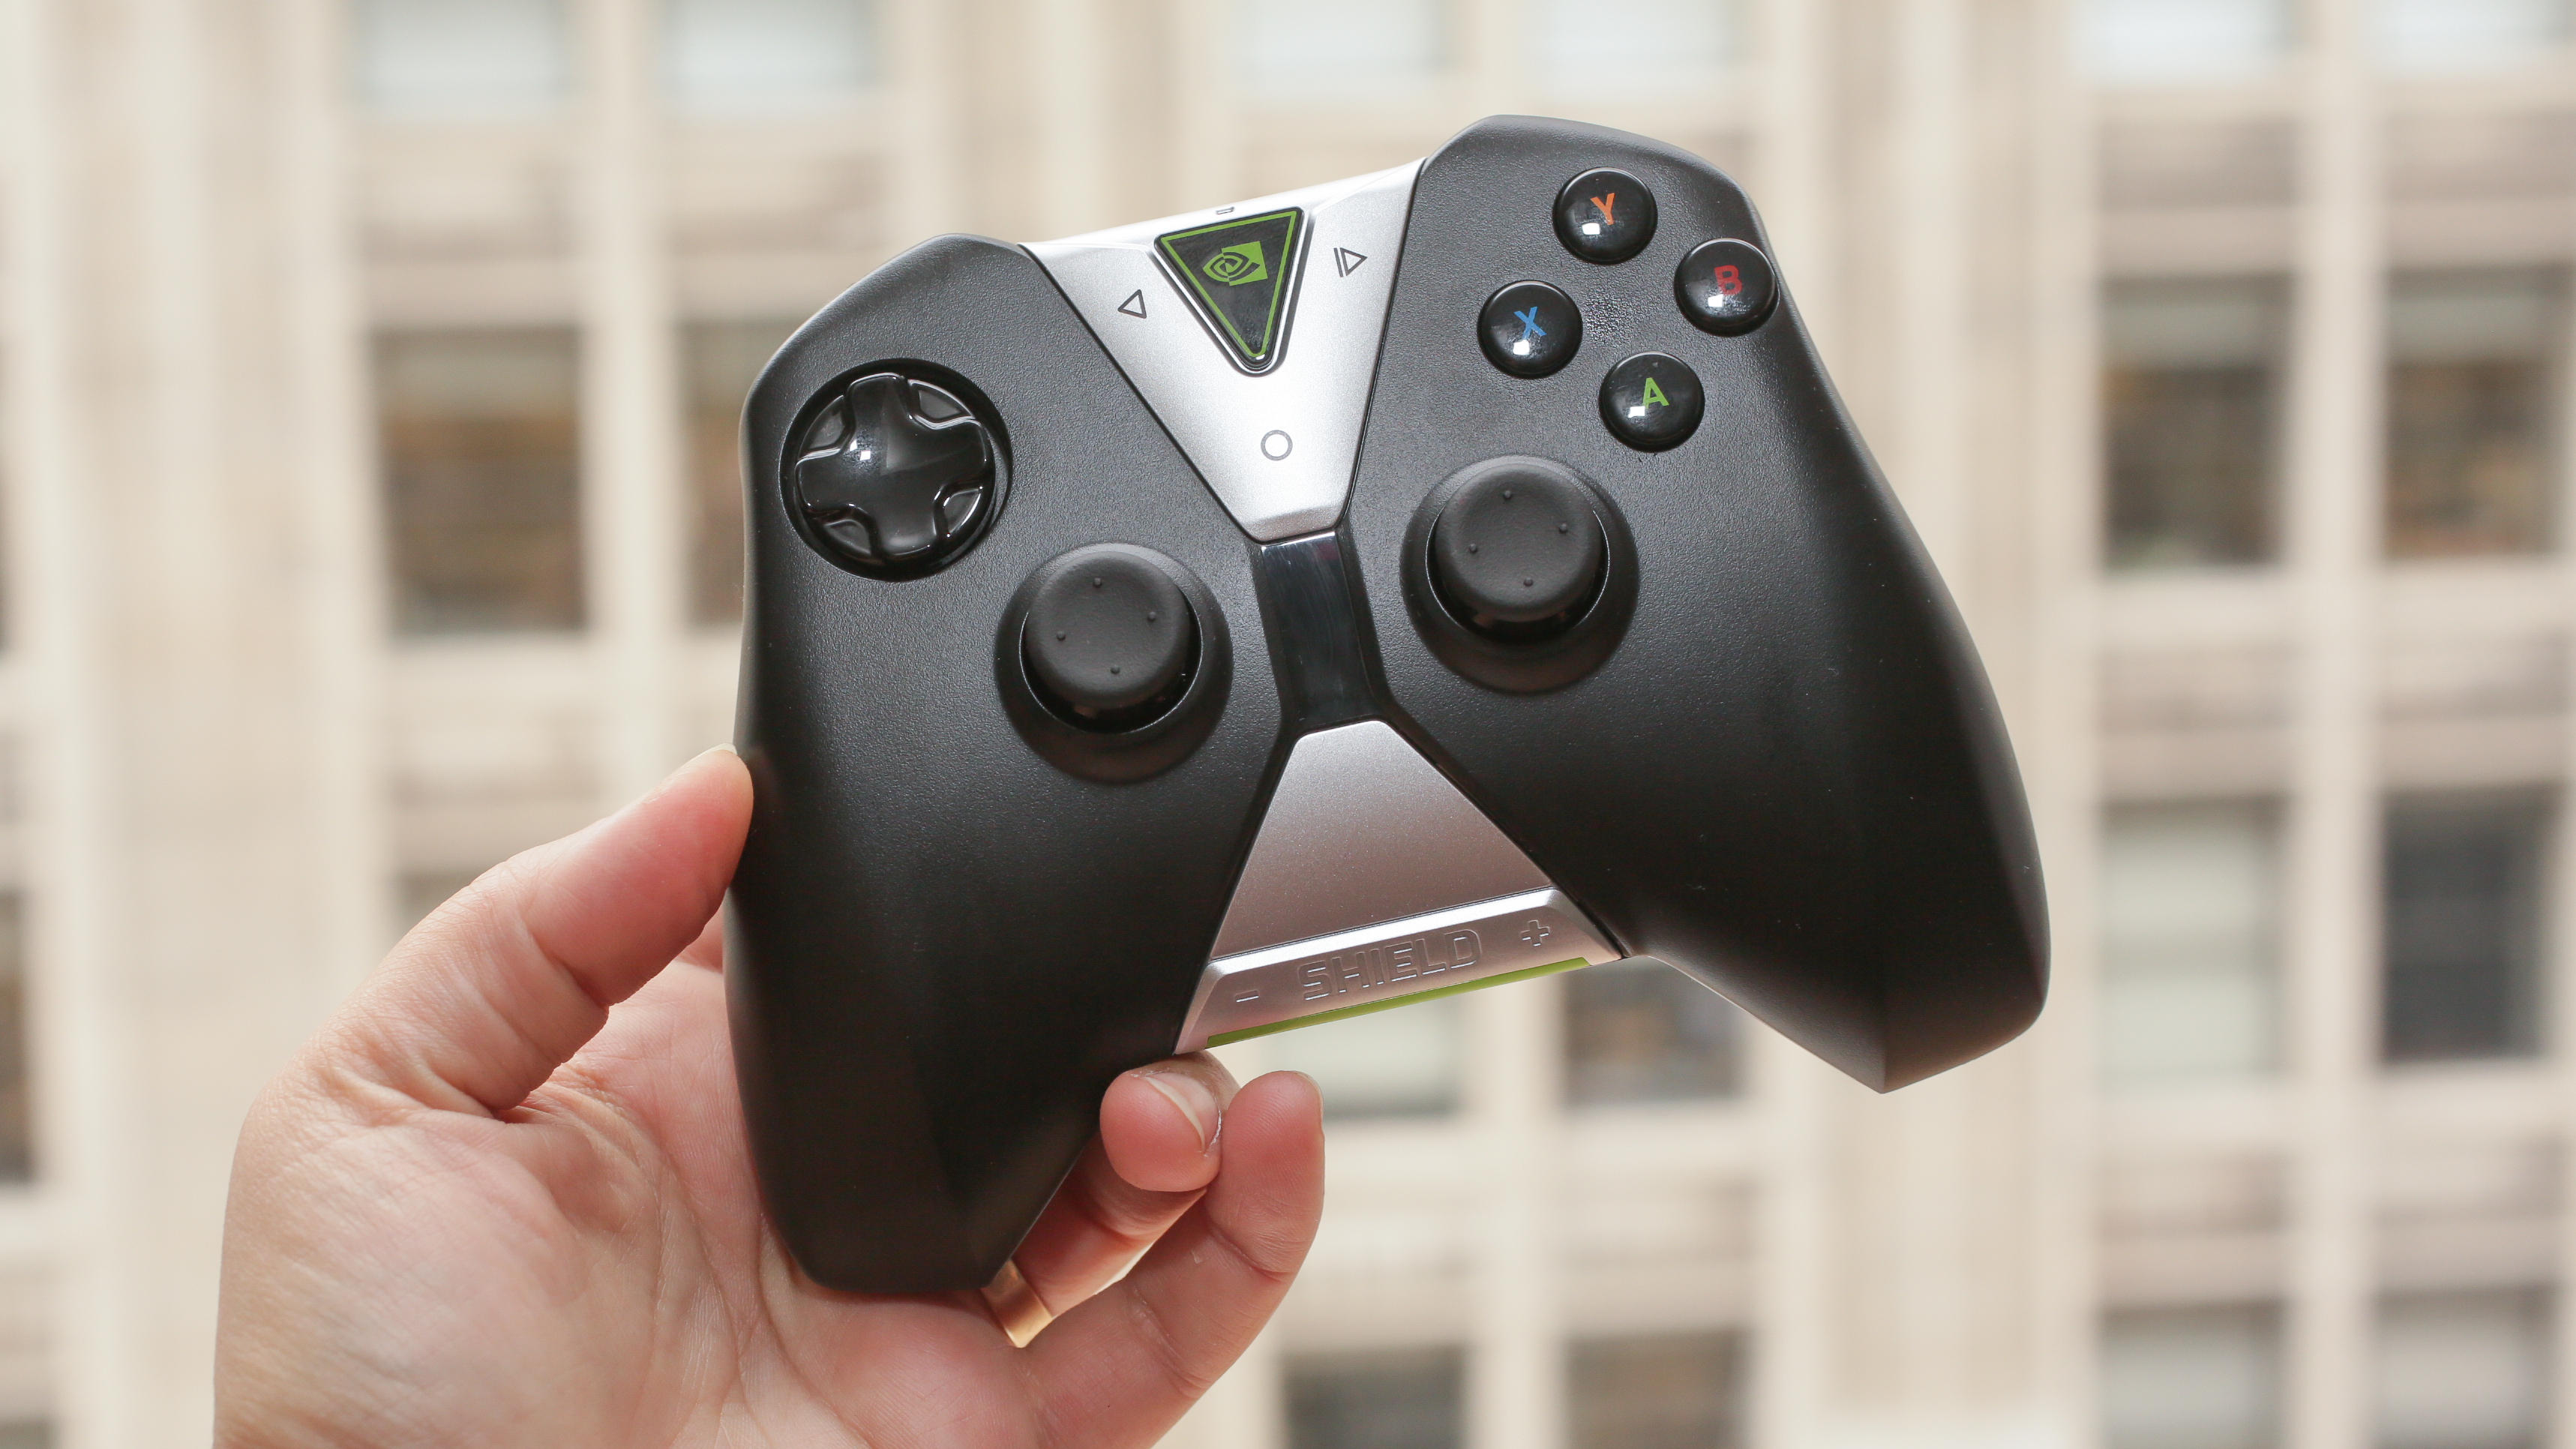 nvidia-shield-android-tv-2015-07.jpg